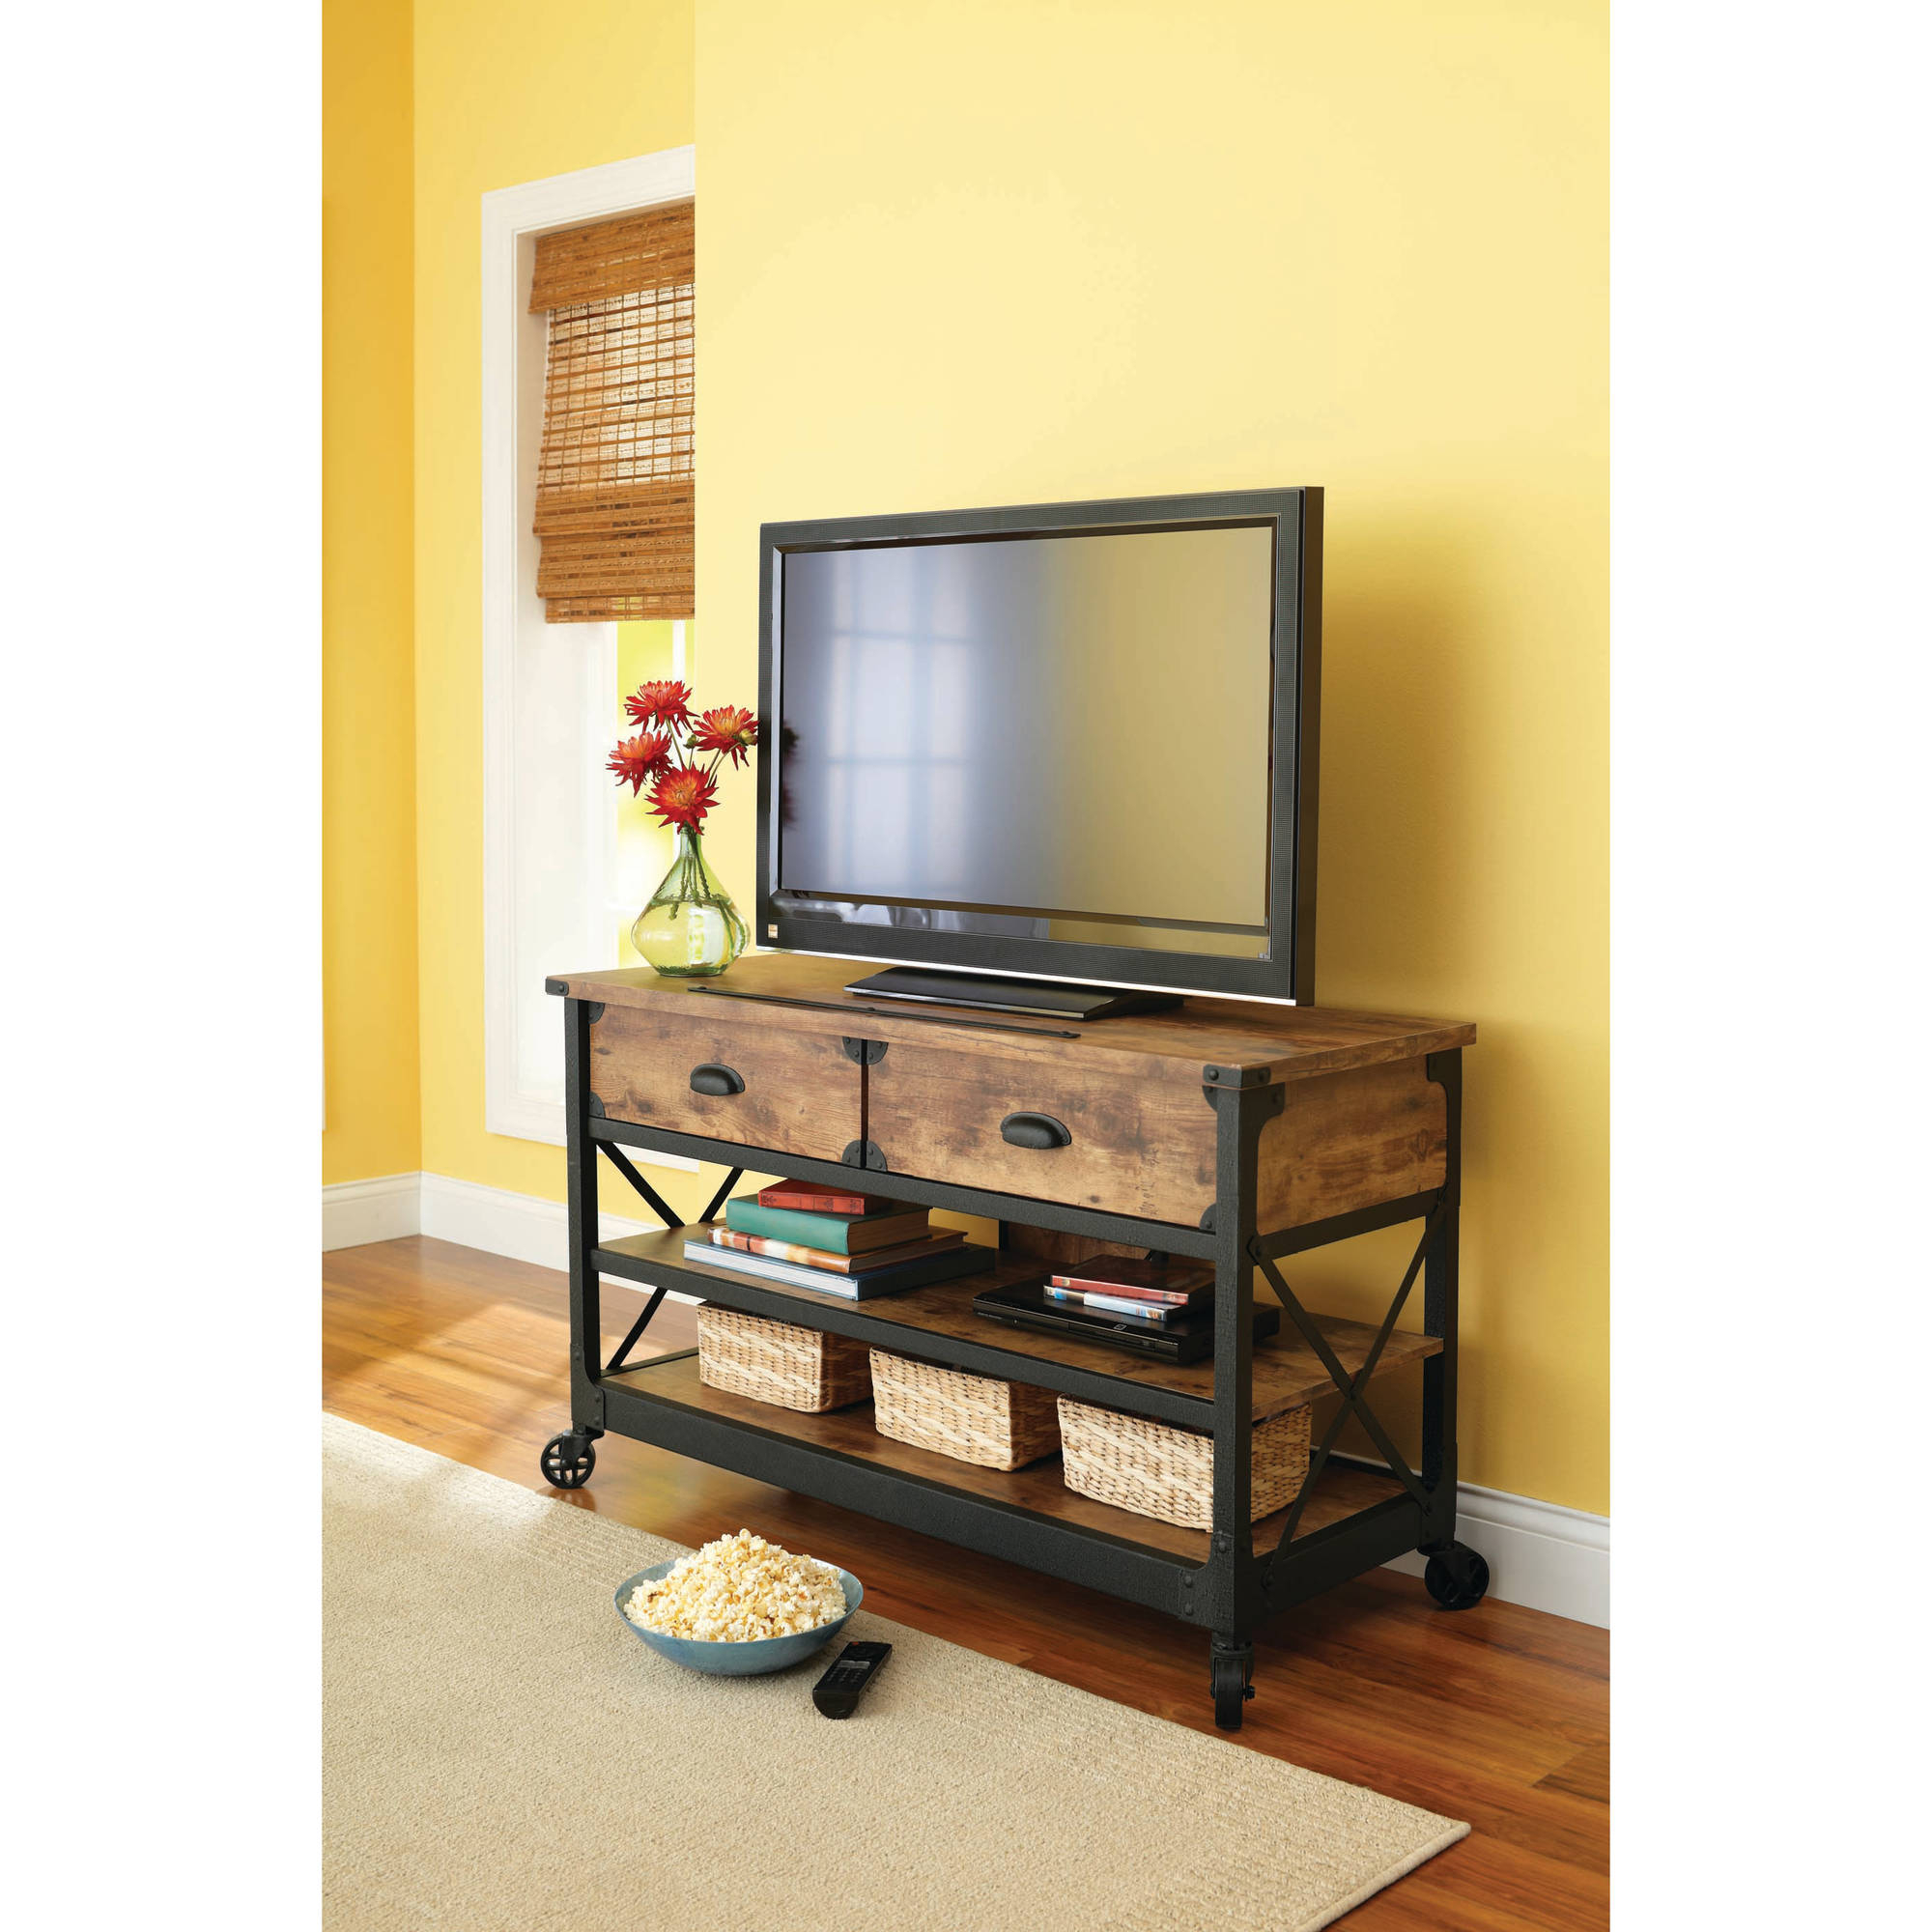 Better Homes & Gardens Rustic Country Tv Stand For Tvs Up To 52 With Regard To Well Known Rustic Furniture Tv Stands (View 3 of 20)